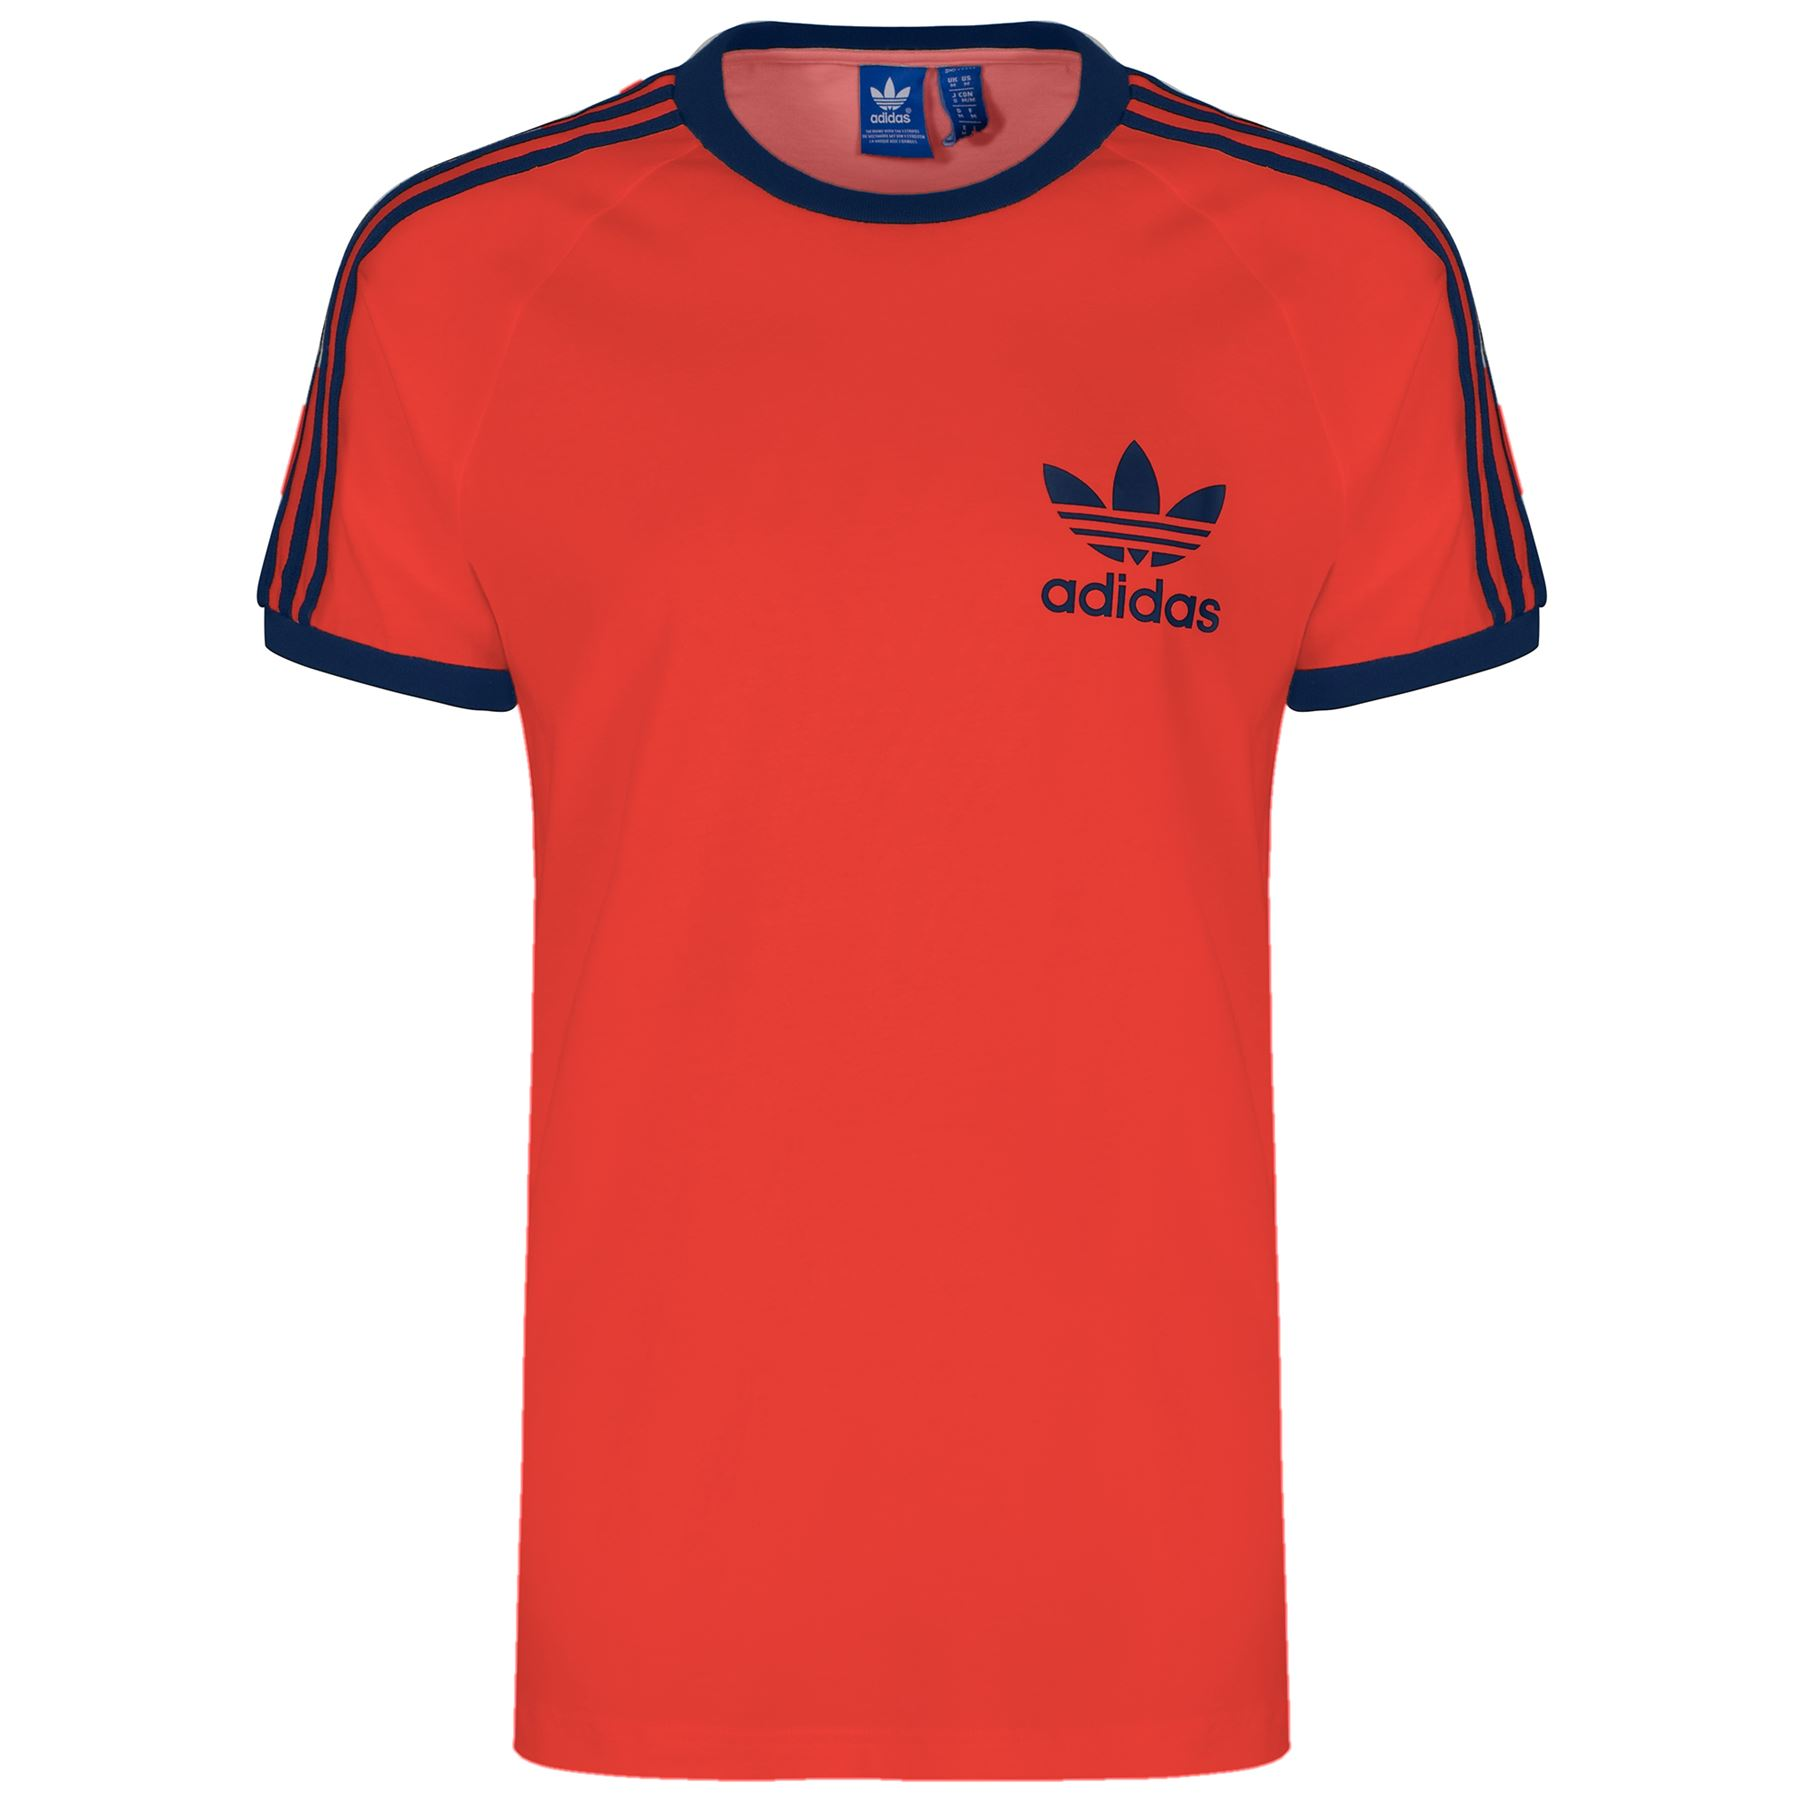 adidas shirt california